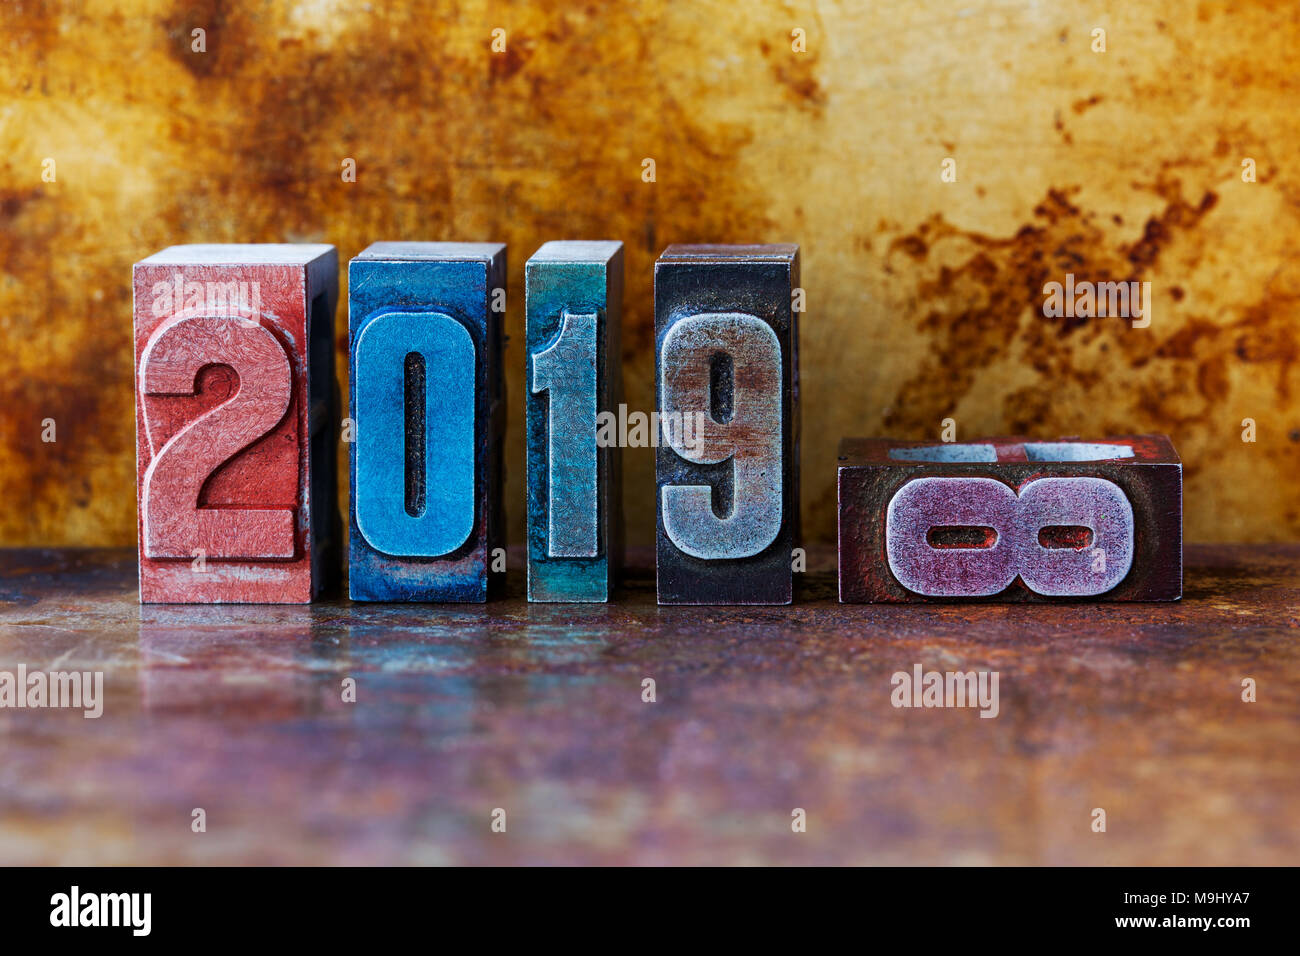 2018 2019 Stock Photos & 2018 2019 Stock Images